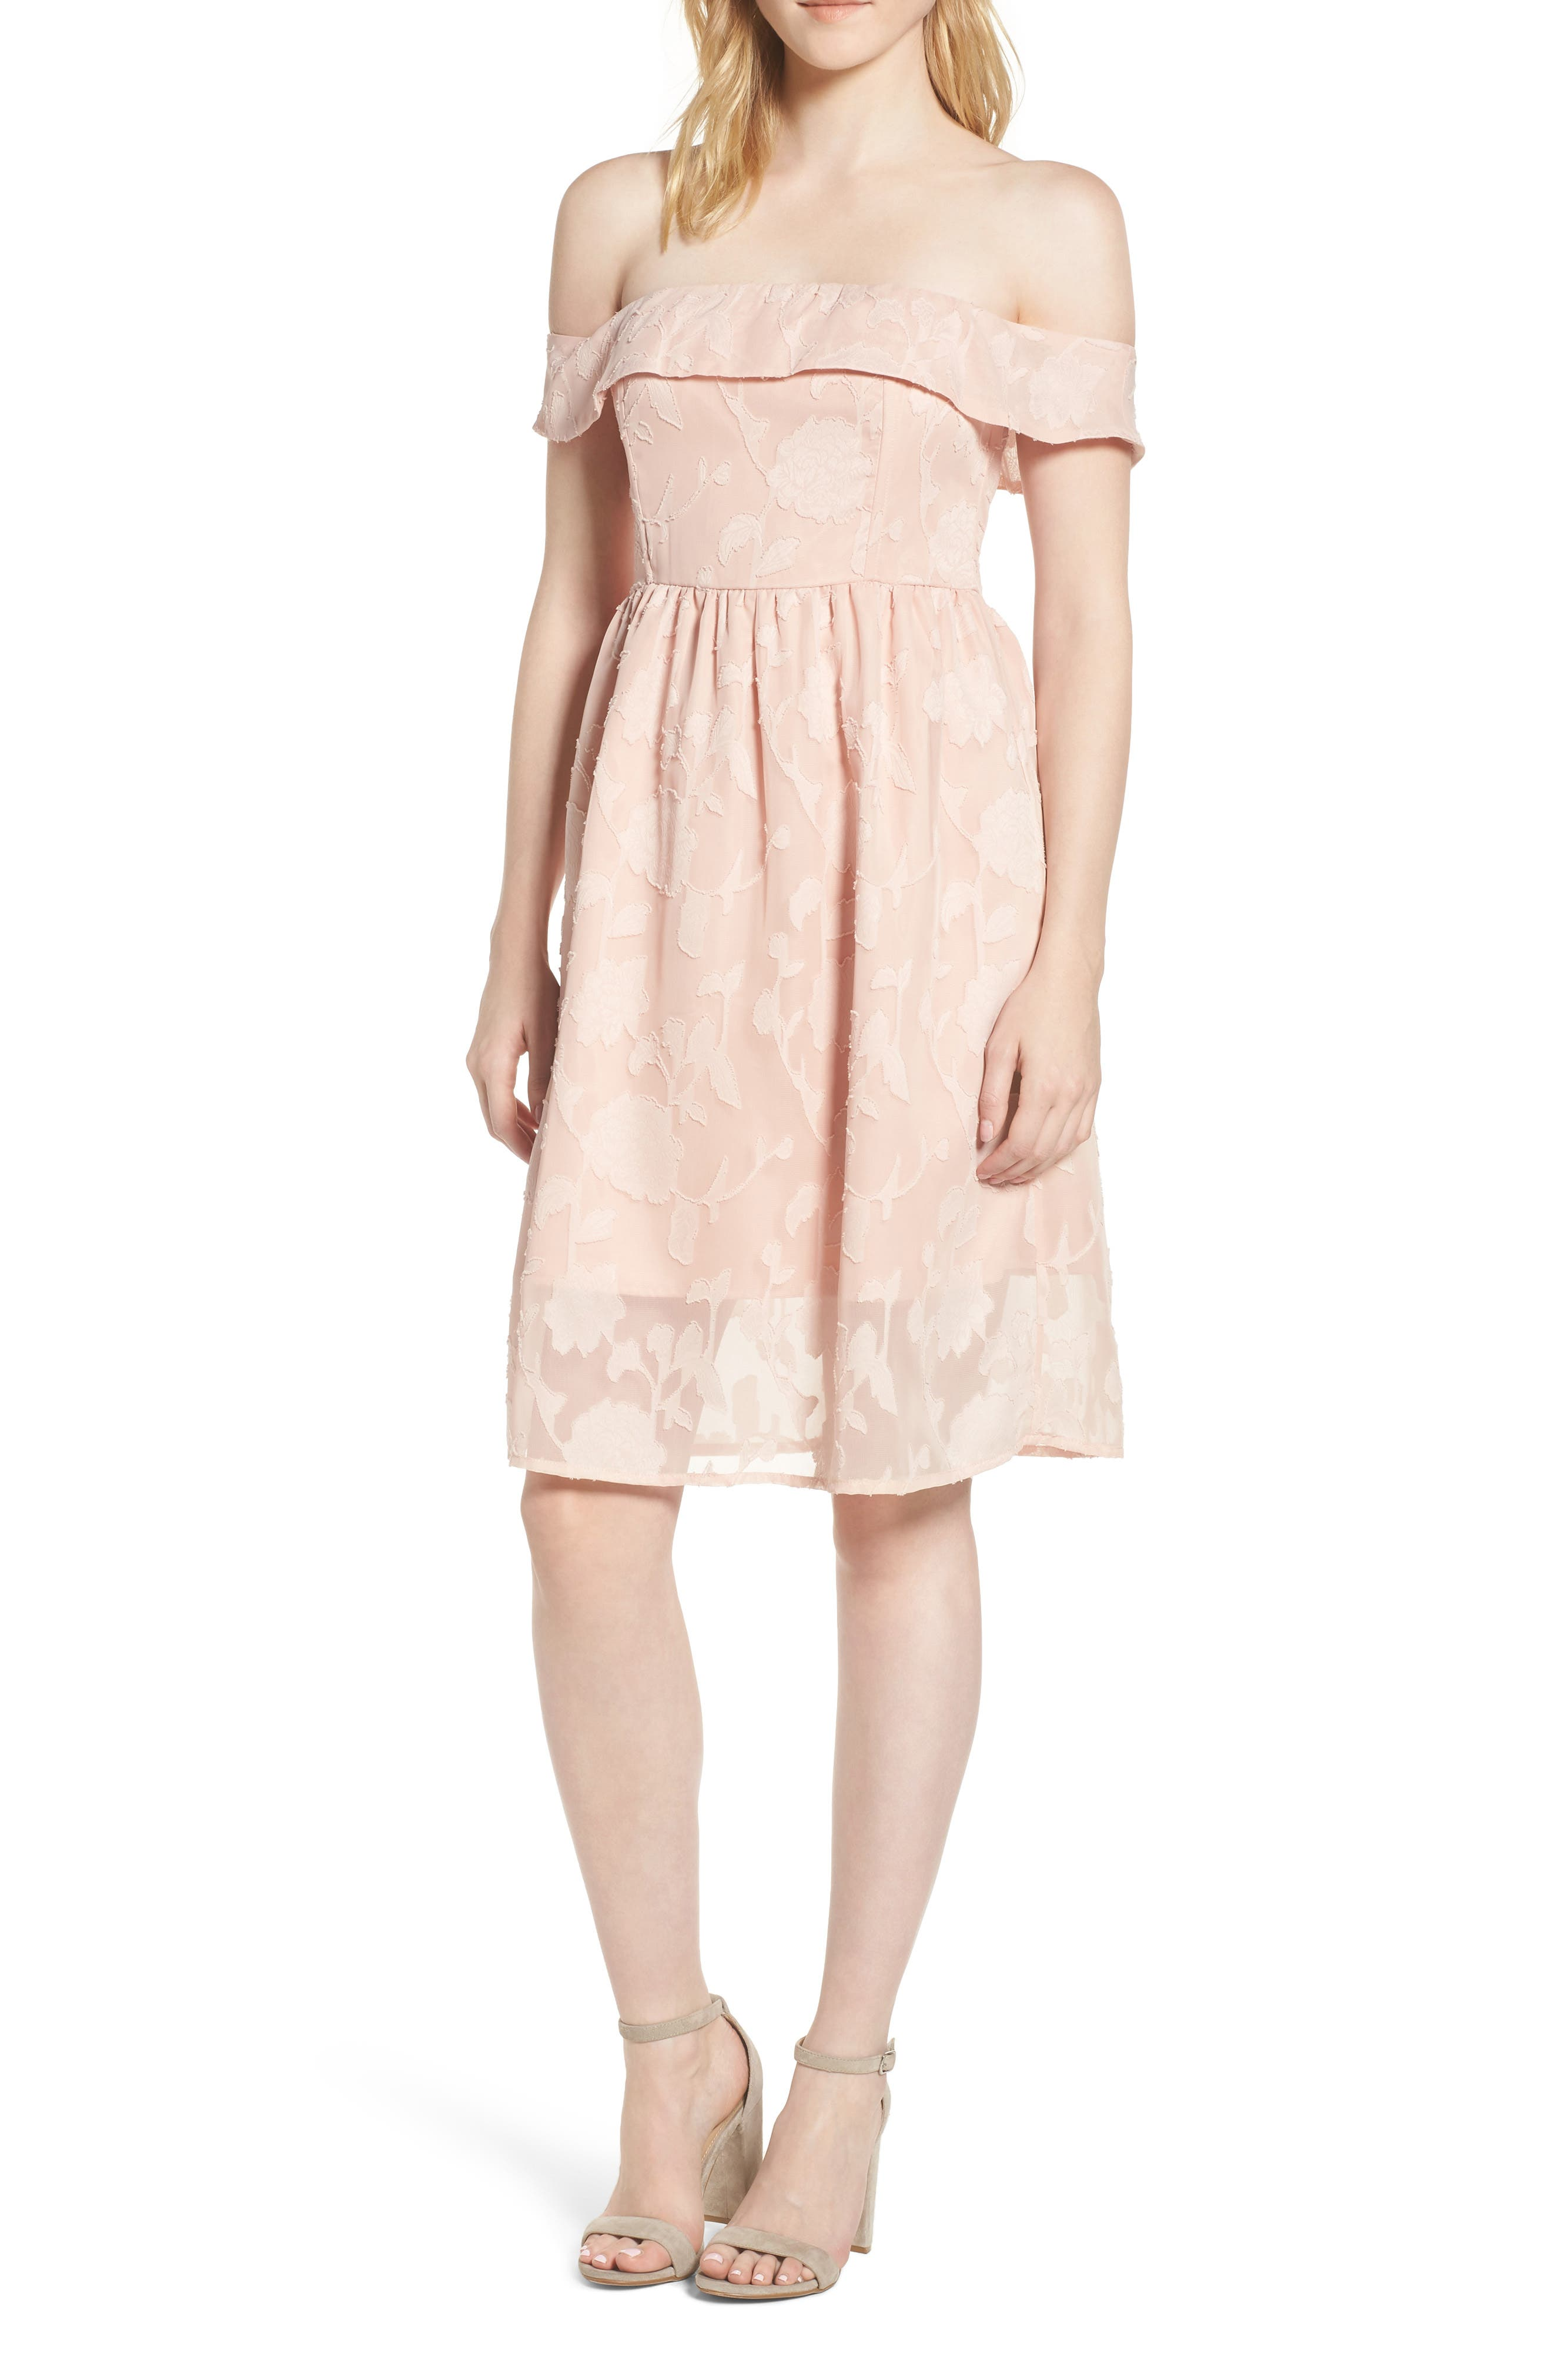 Honey Off the Shoulder Dress,                         Main,                         color, MUTED PEACH